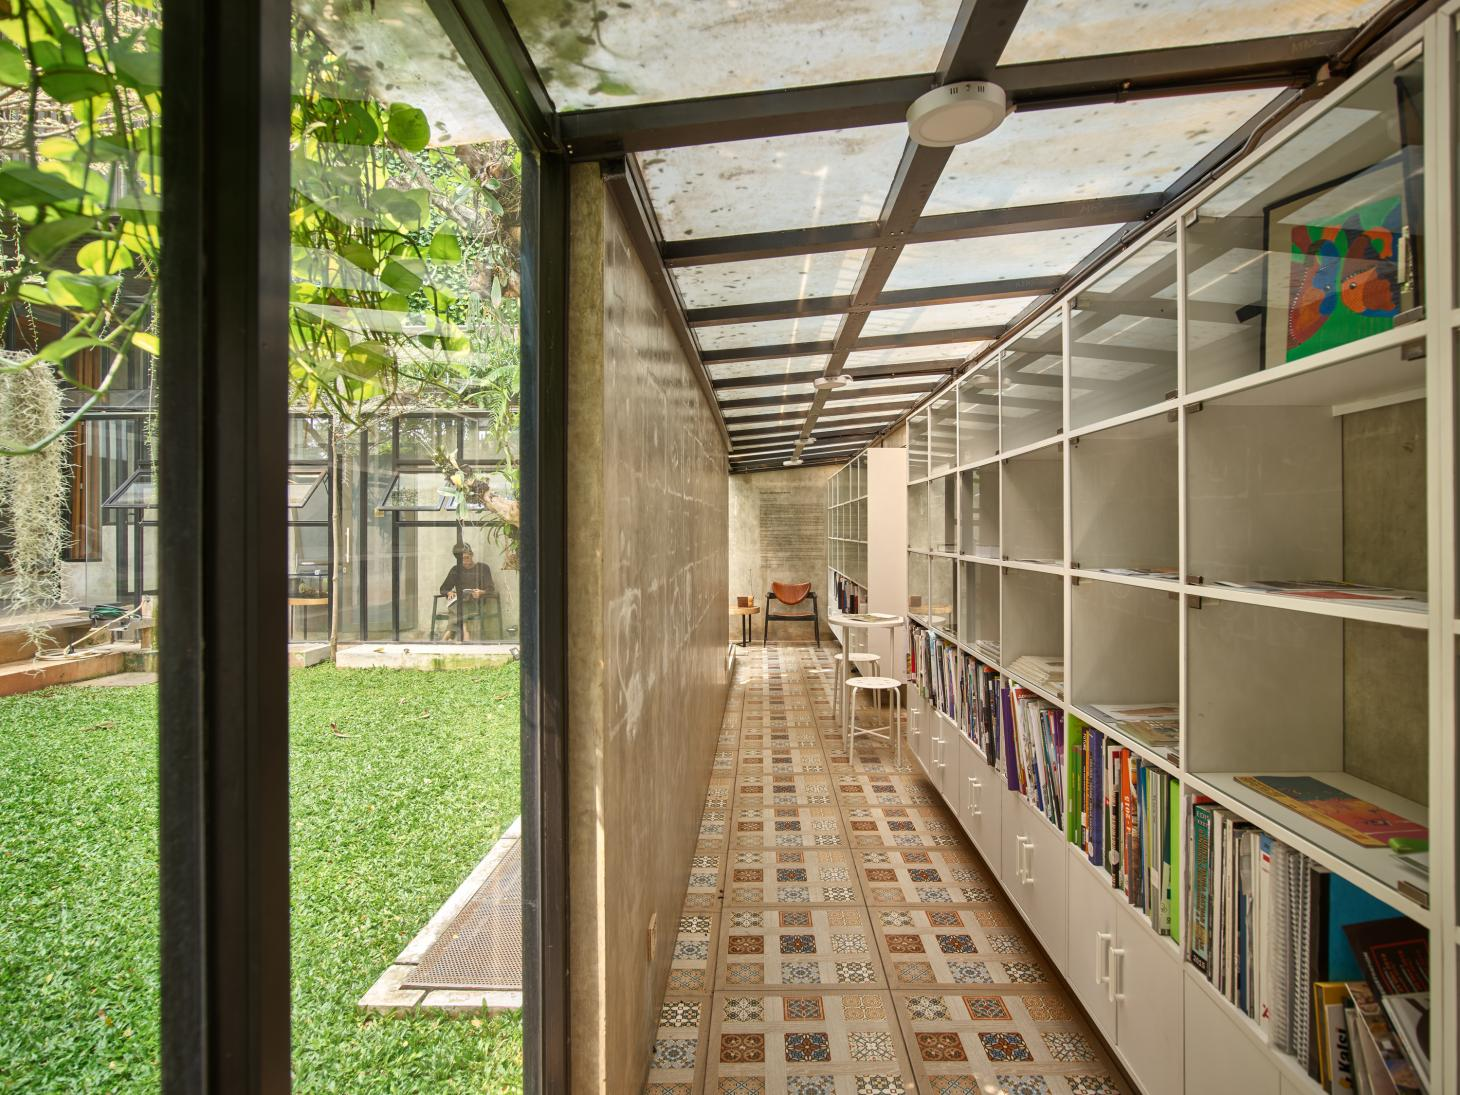 library at RAW architecture's live/work space